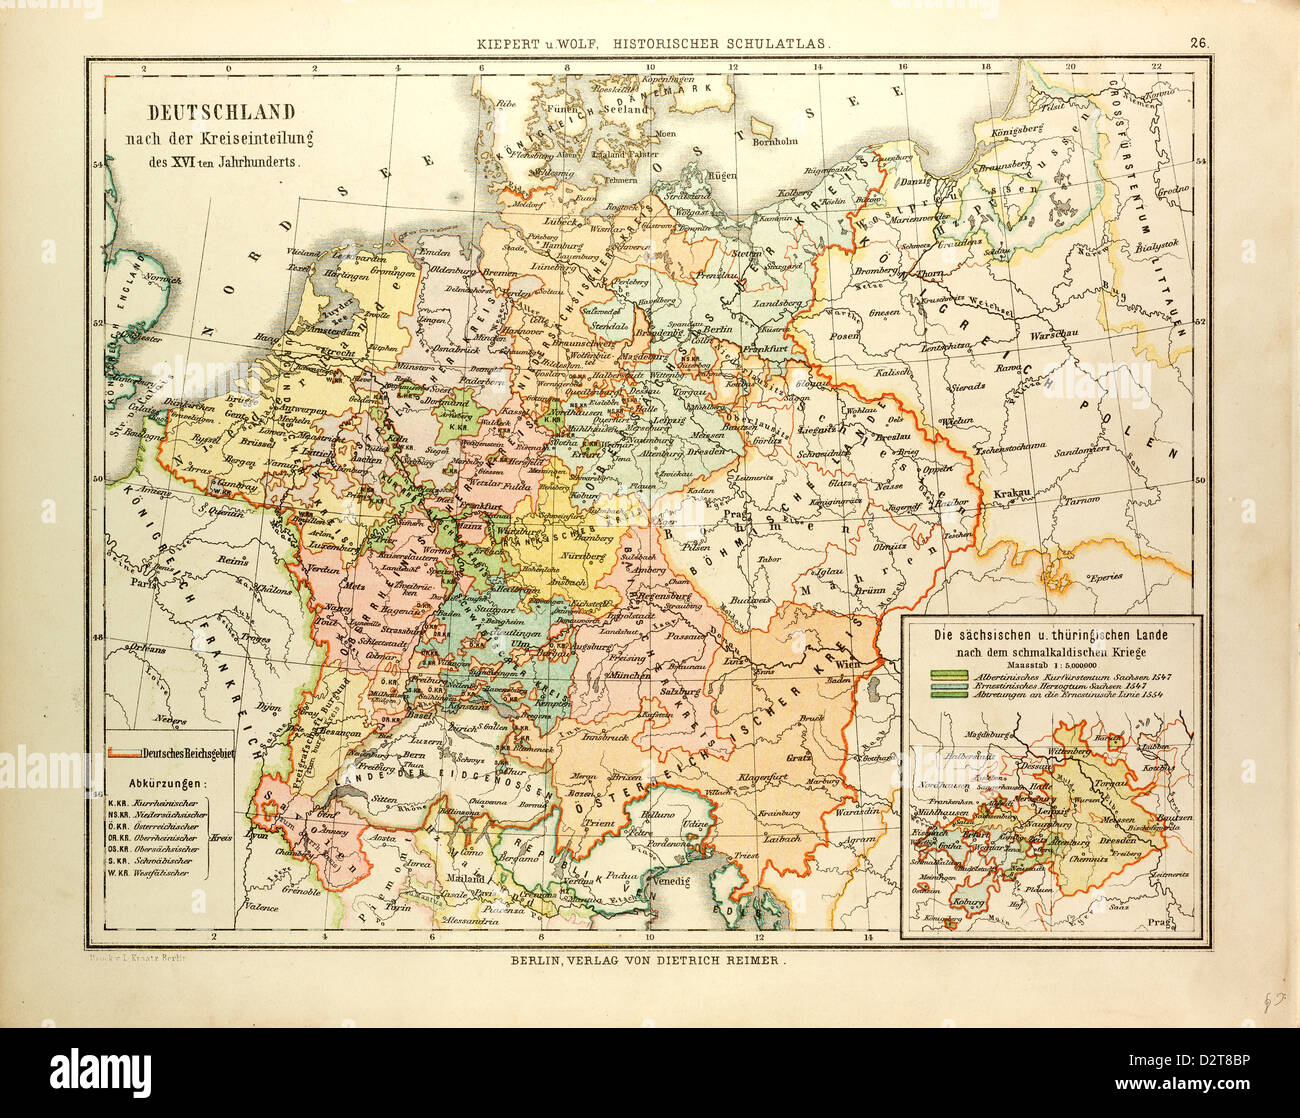 map of germany in the 16th century